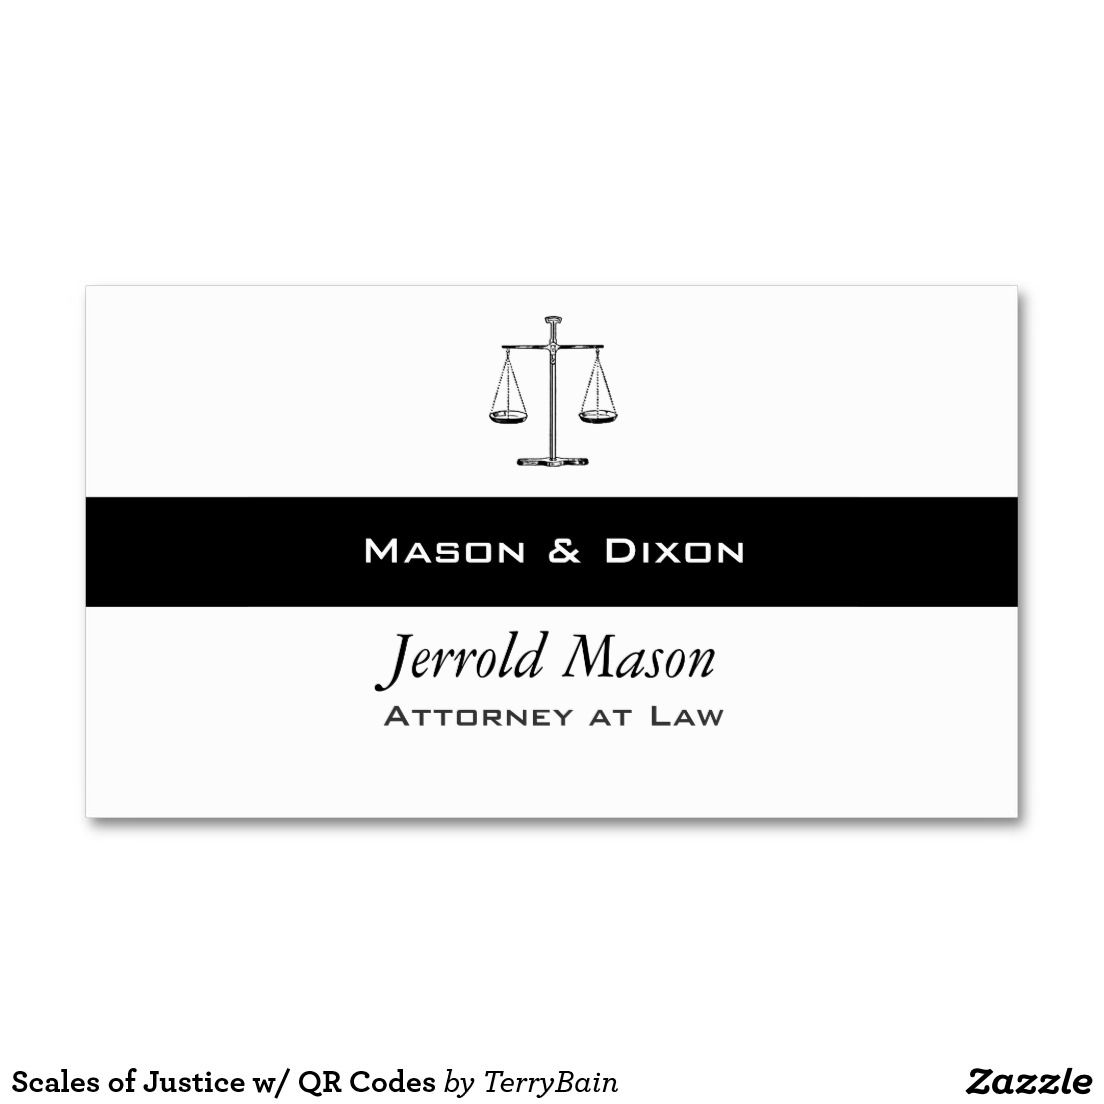 Scales of Justice w/ QR Codes Business Card | Qr codes, Business ...